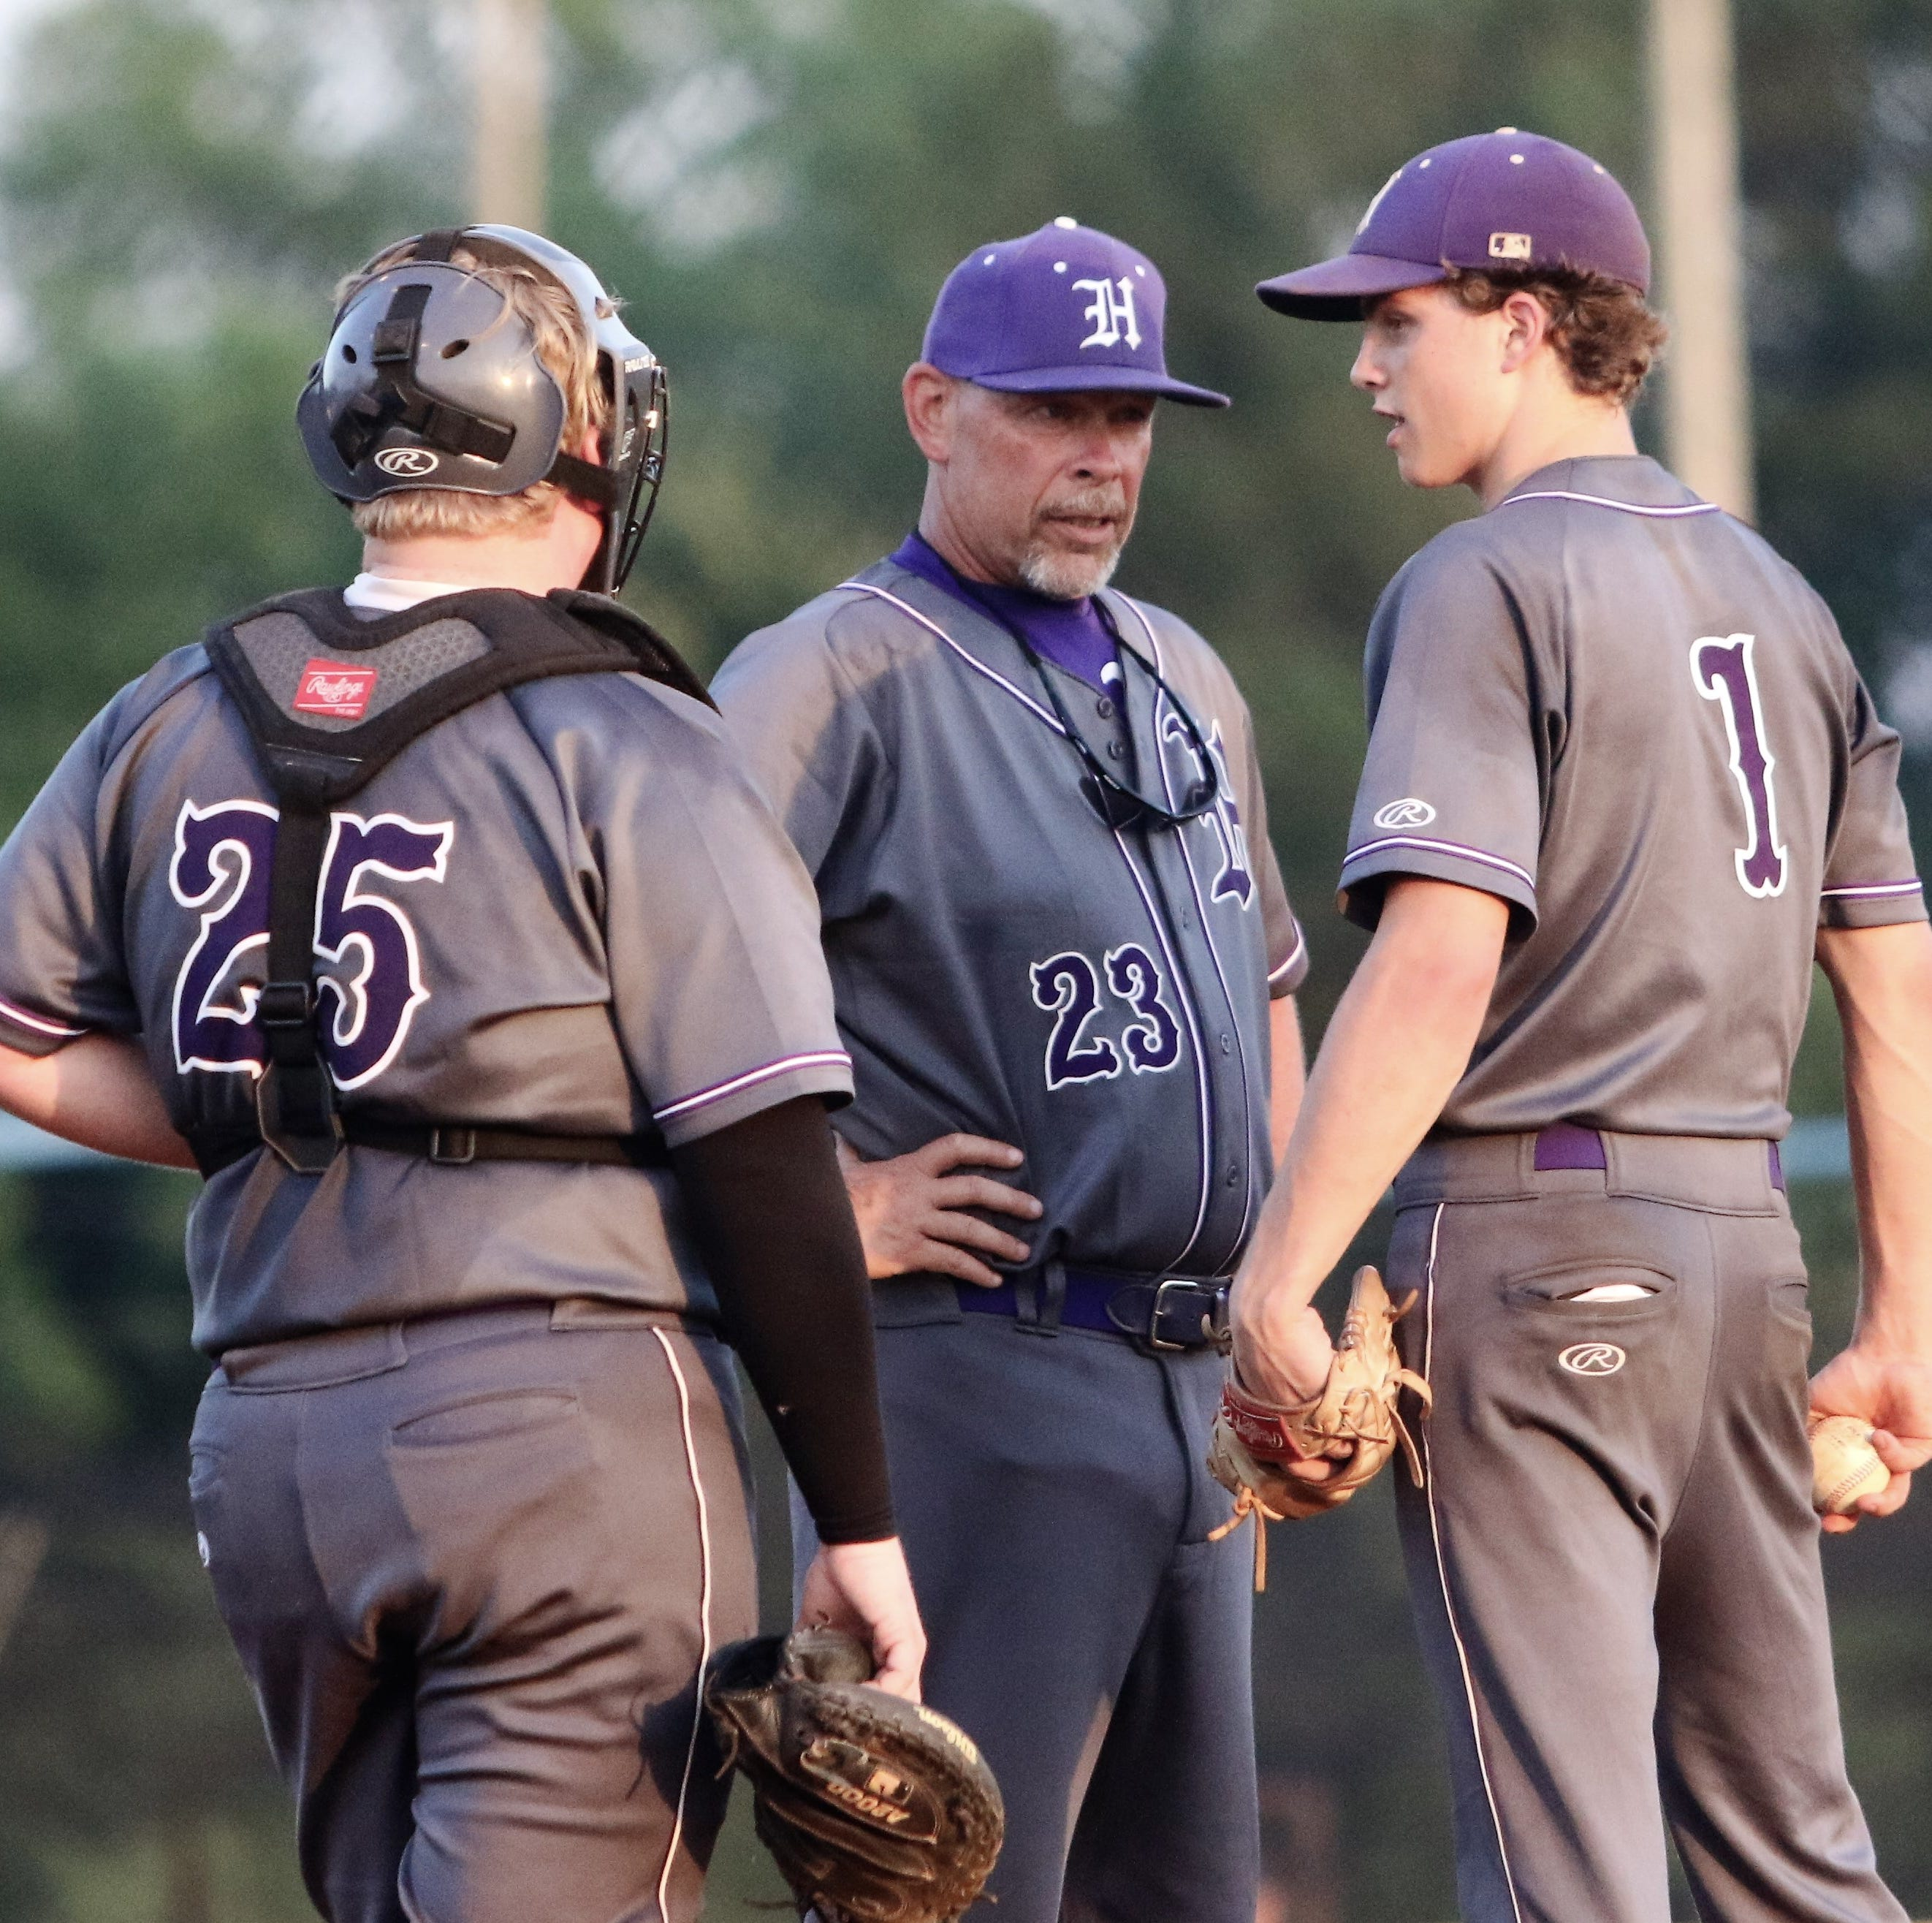 TSSAA Spring Fling: Haywood, Eagleville baseball coaches ejected